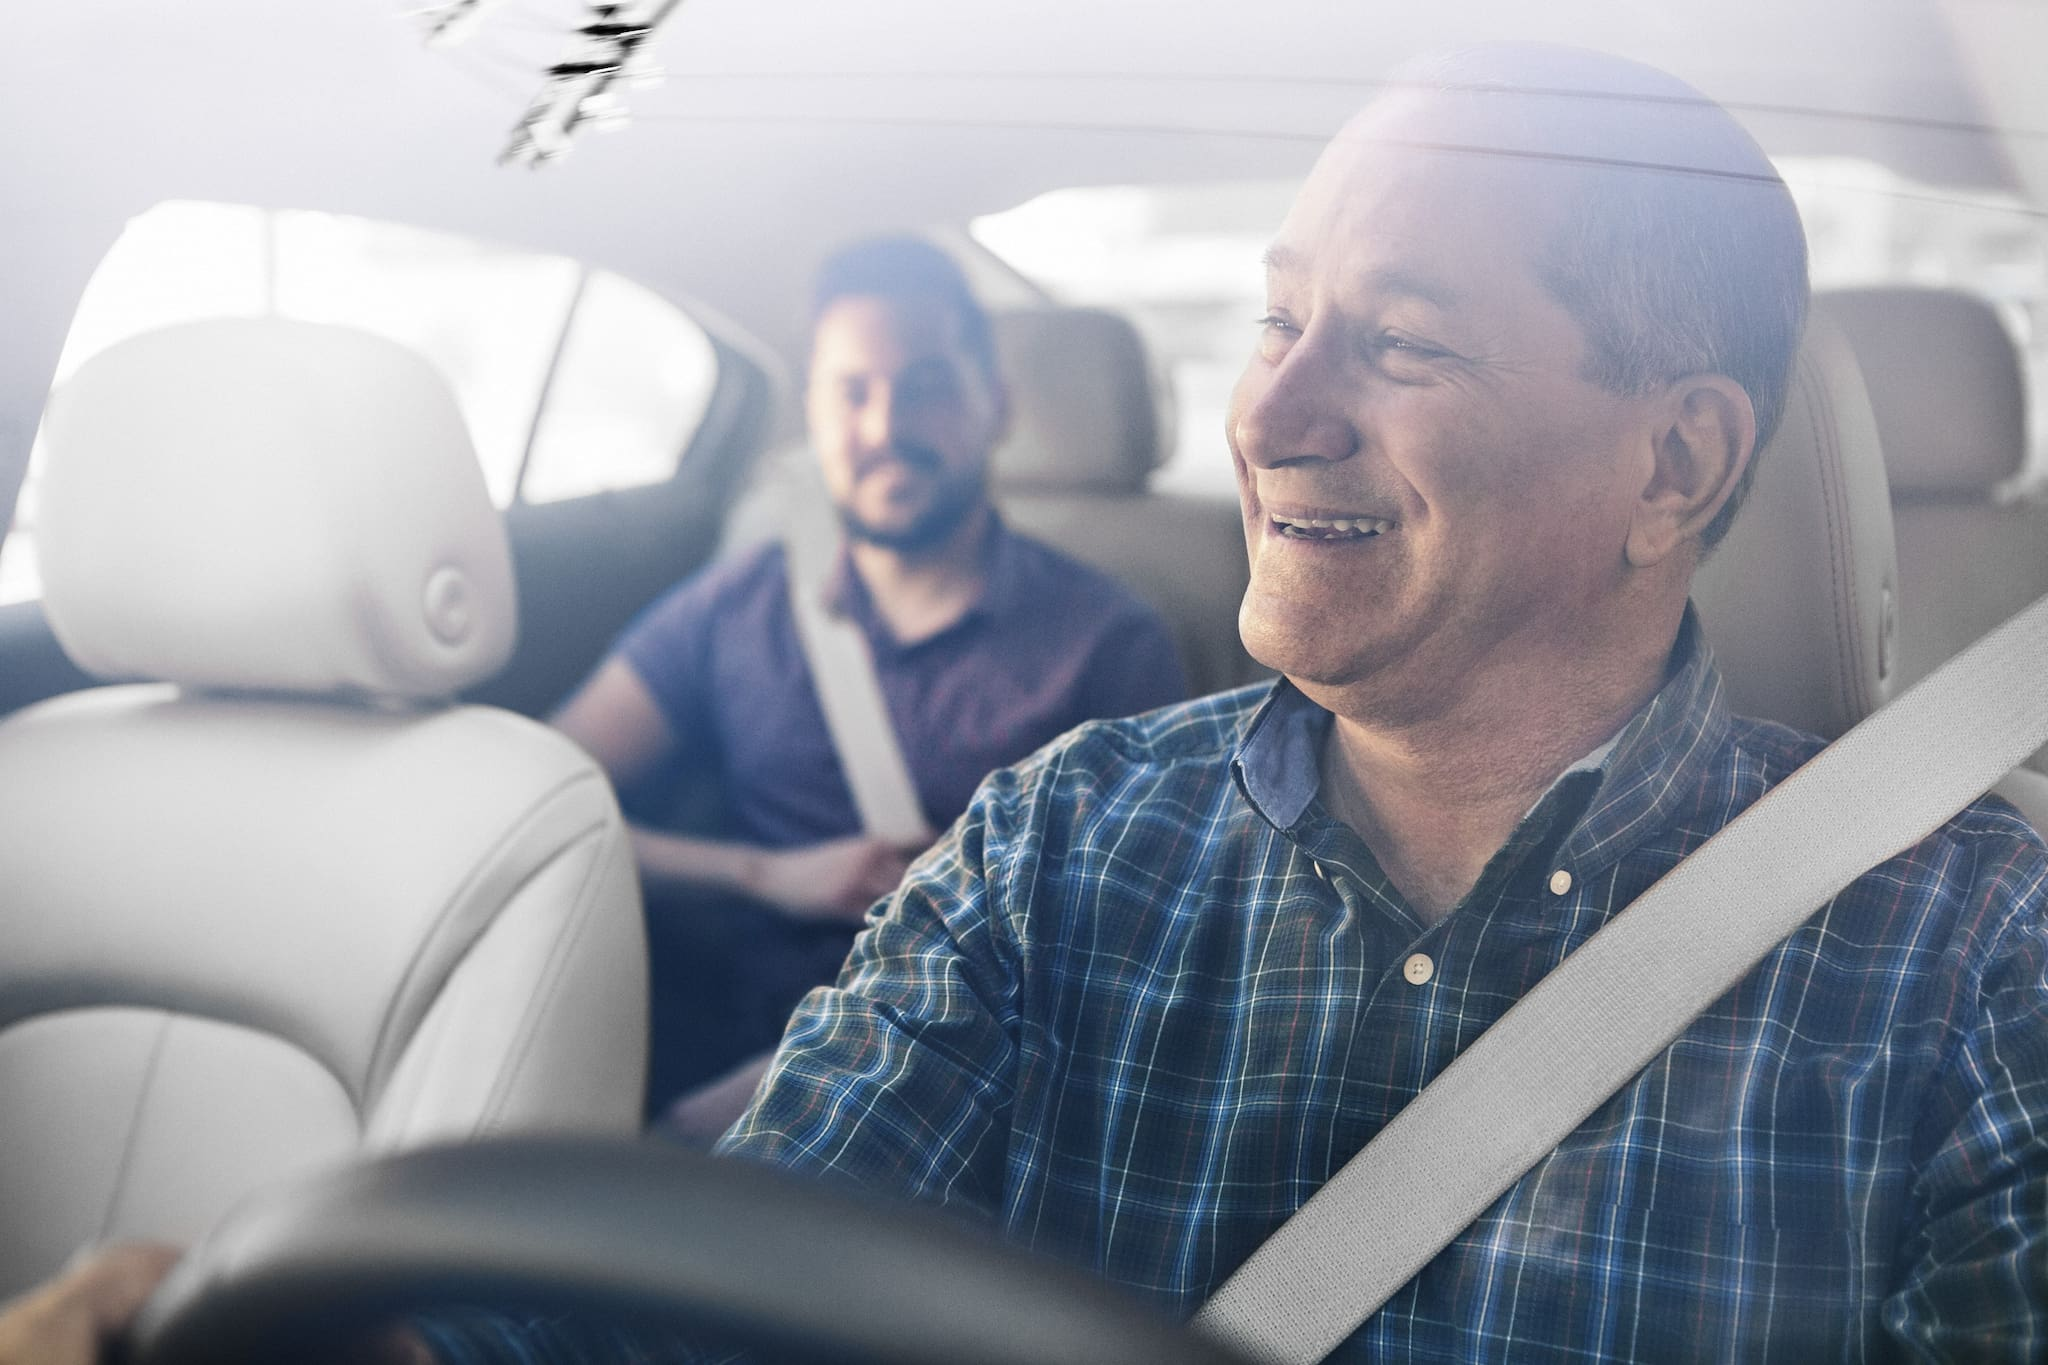 New Marketing Campaign to Prove Ridesharing is Better than Car Ownership